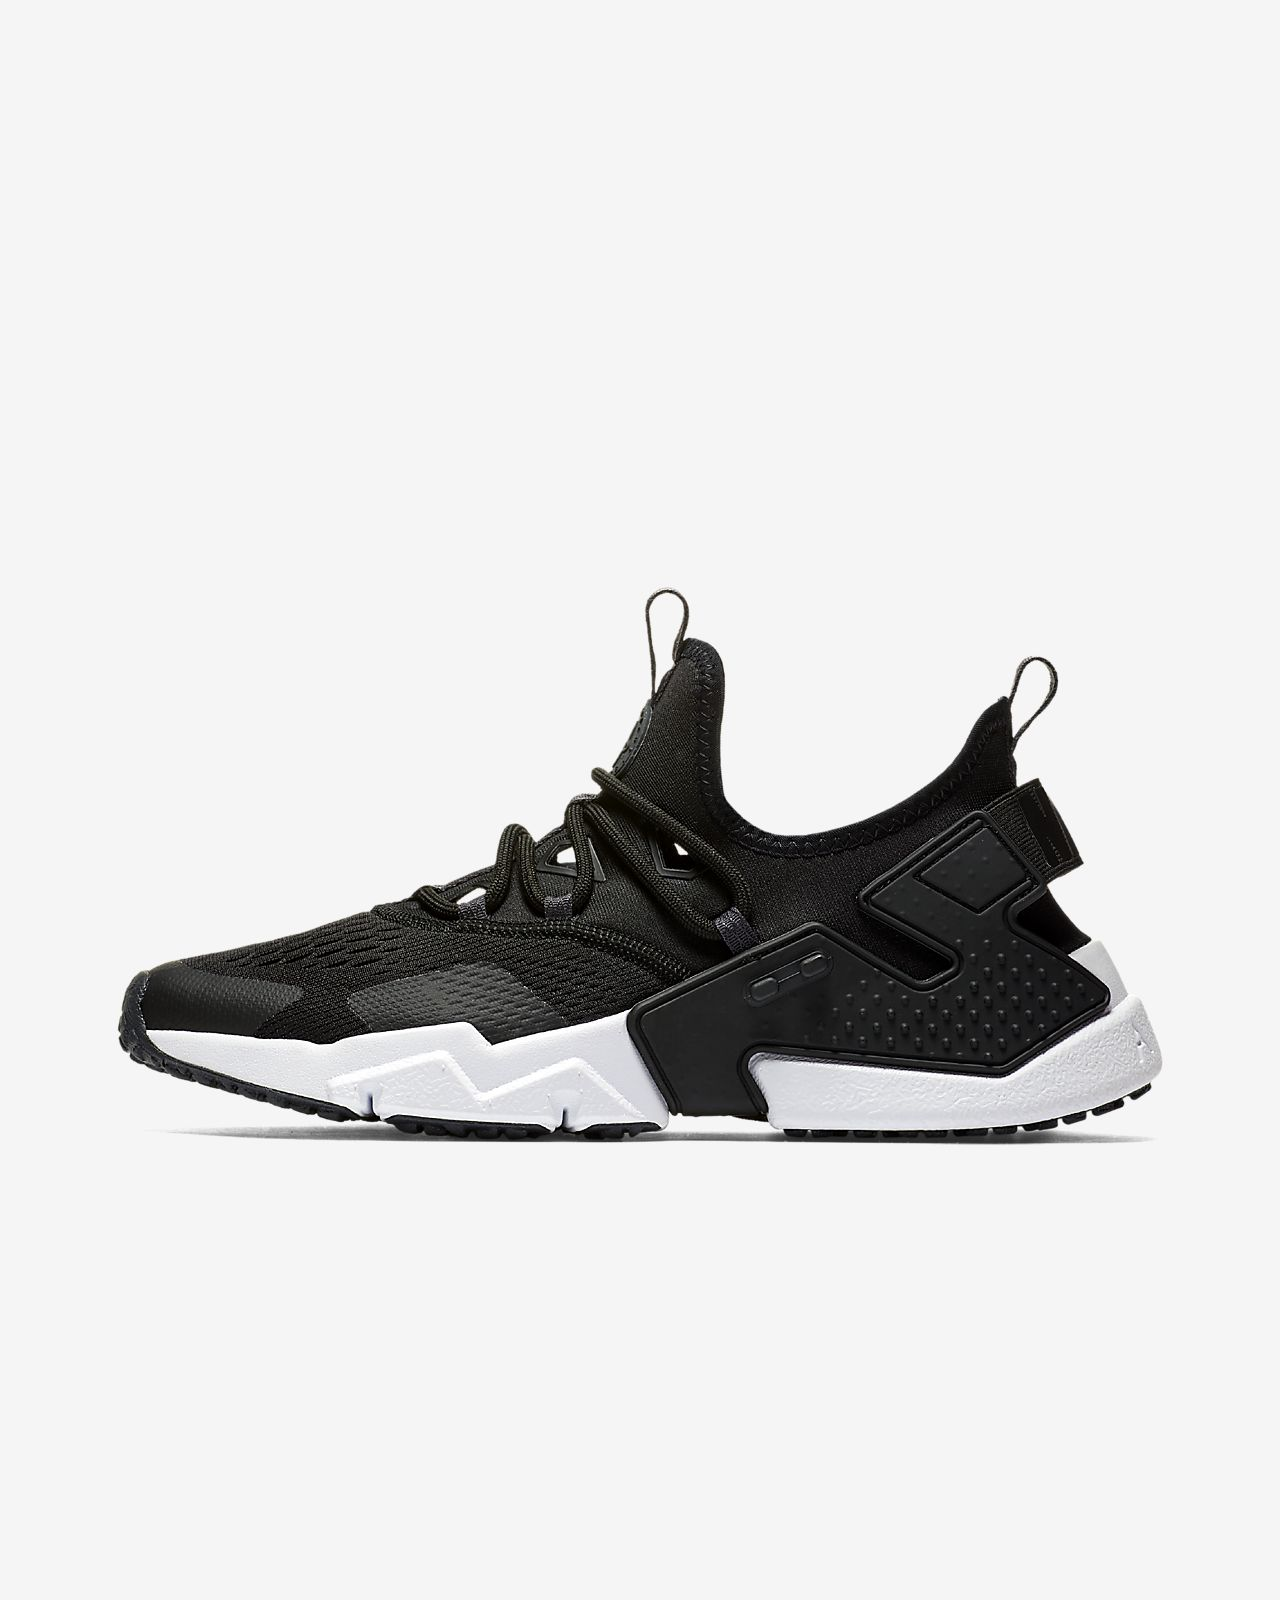 Nike Air Huarache Drift Breathe sneakers store for sale cheap best place PdZBl9w